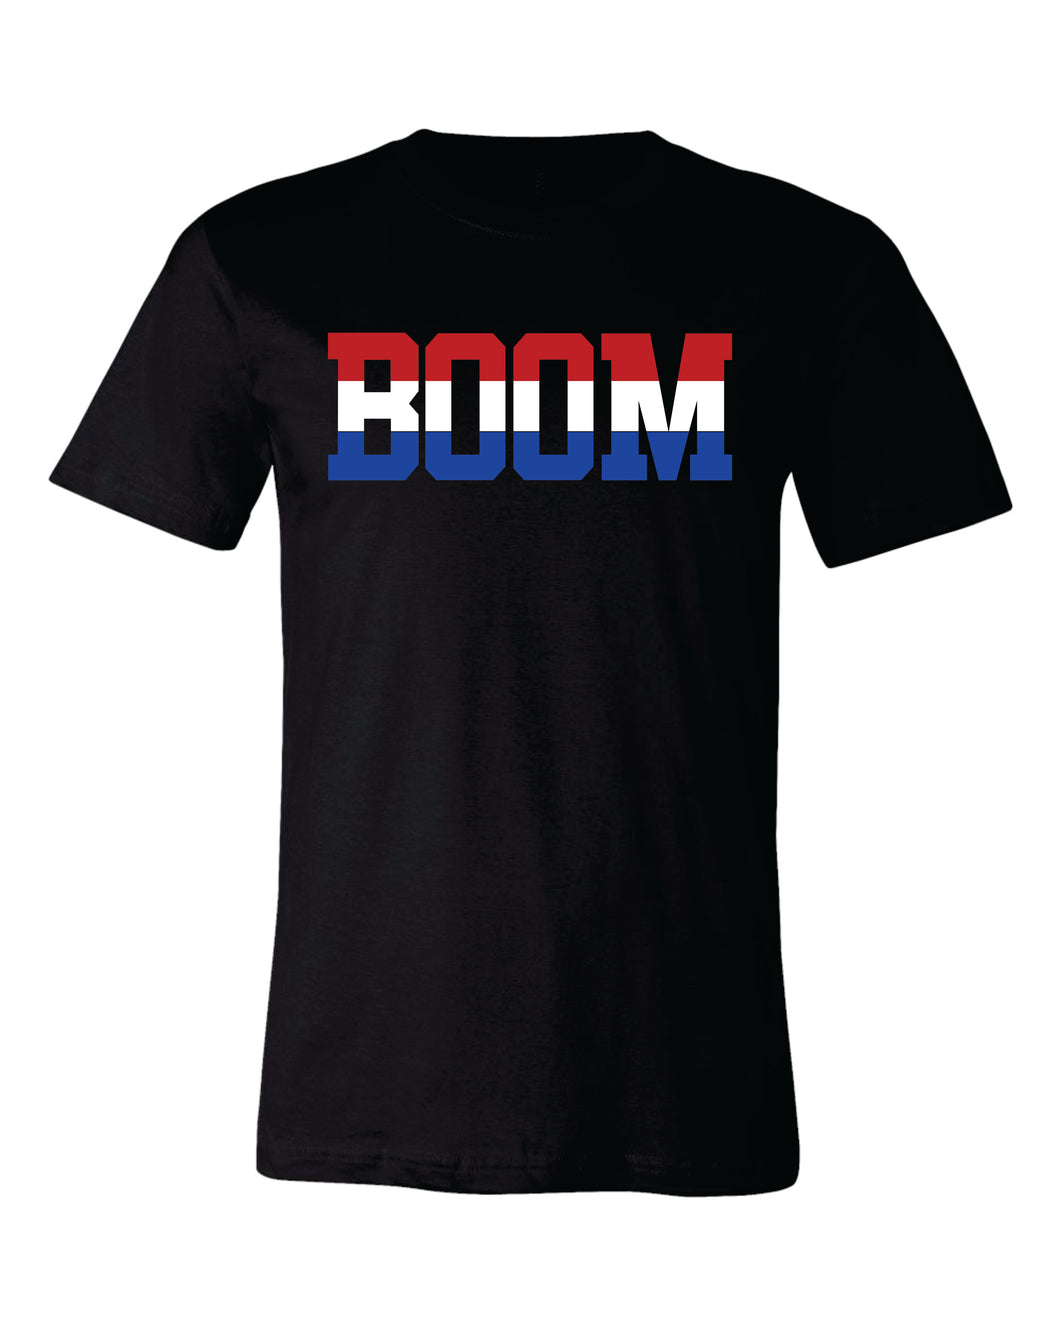 Boom T-Shirt (YOUTH & ADULT)